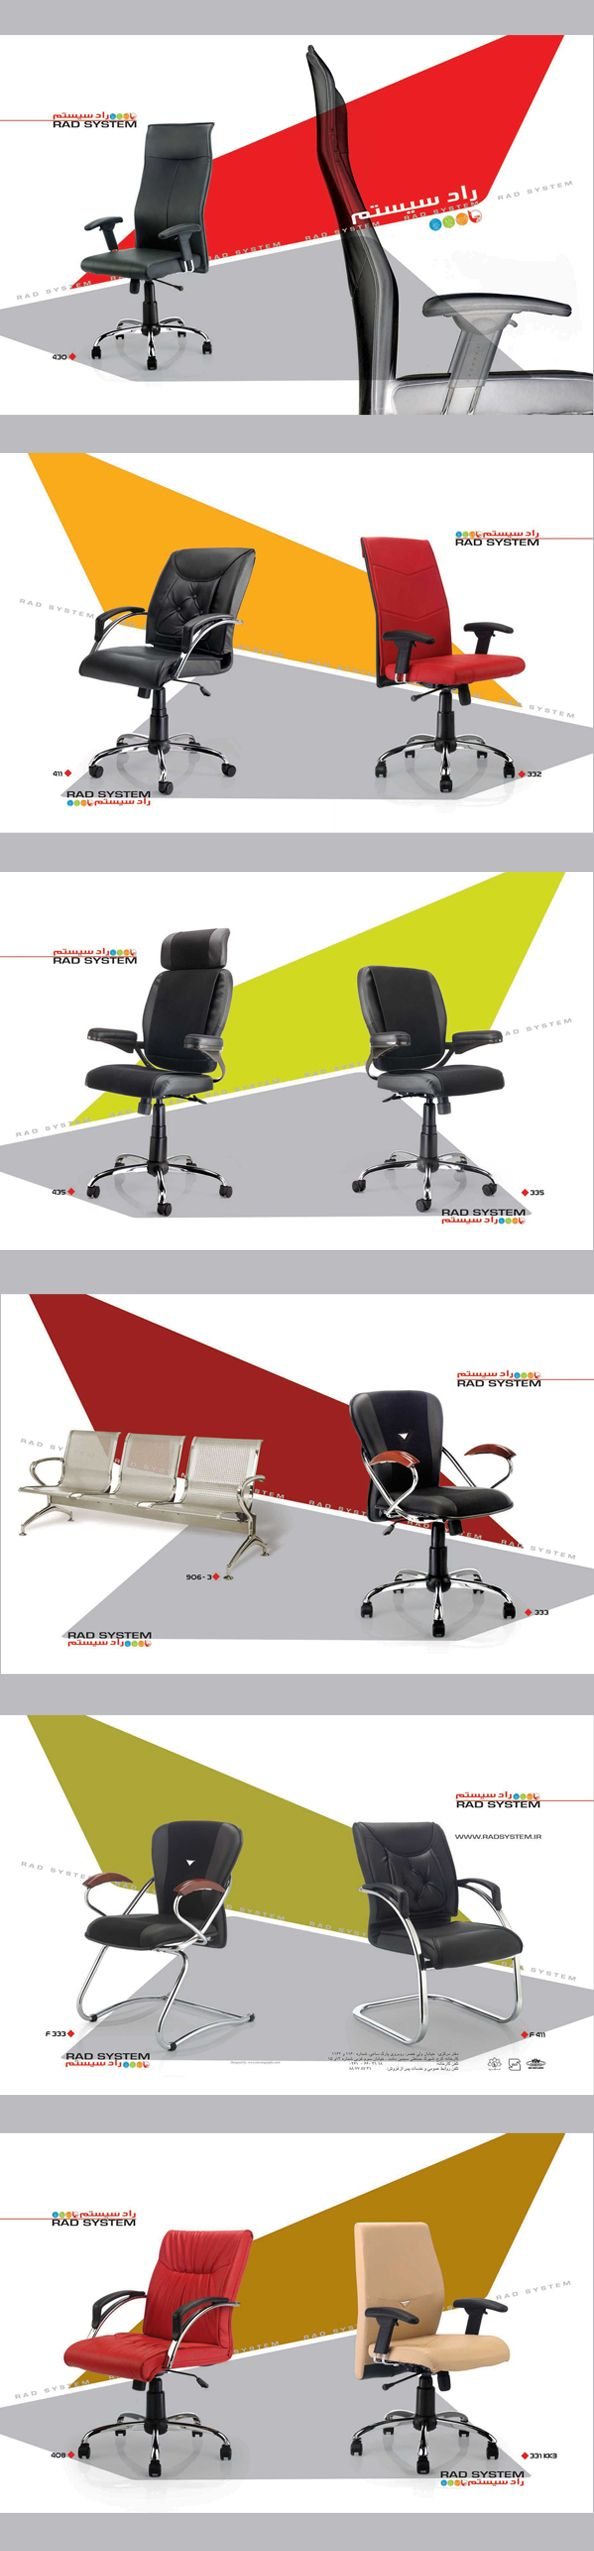 Office Furniture Shop Equipment RADSYSTEM #catalogue #design #graphic